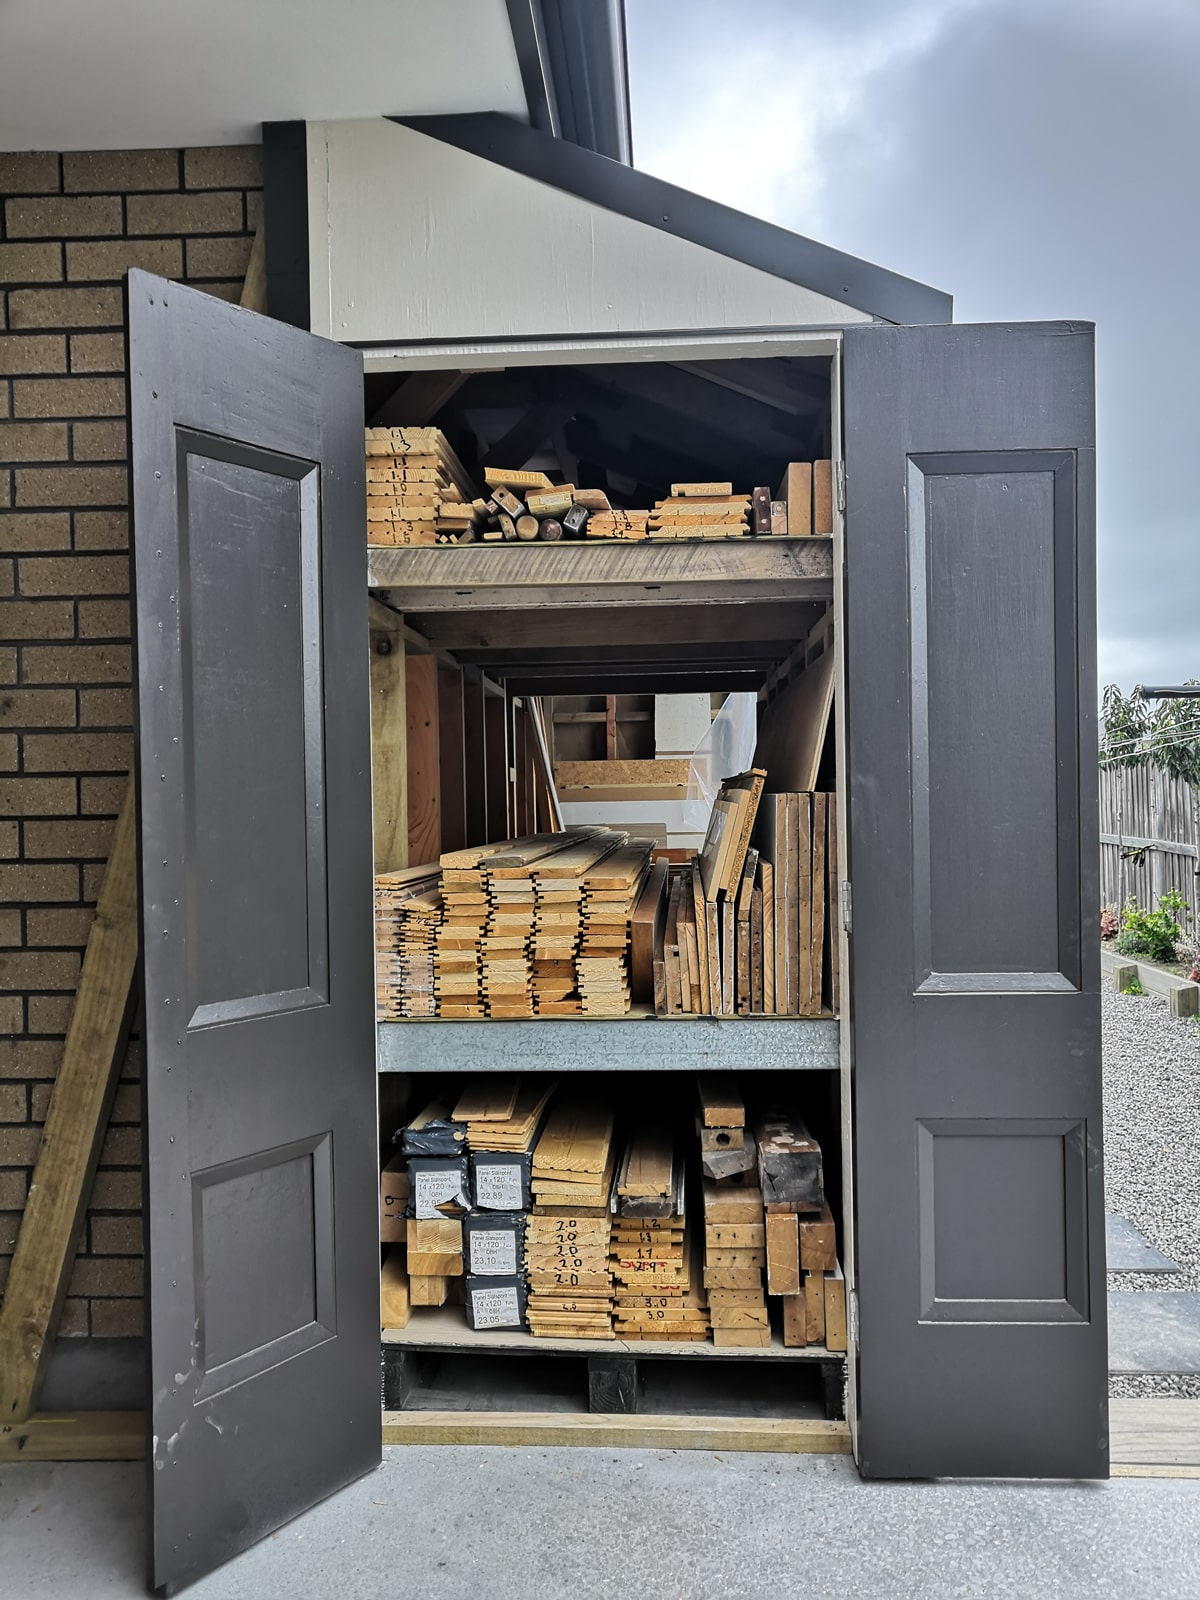 Woodshed made from recycled materials